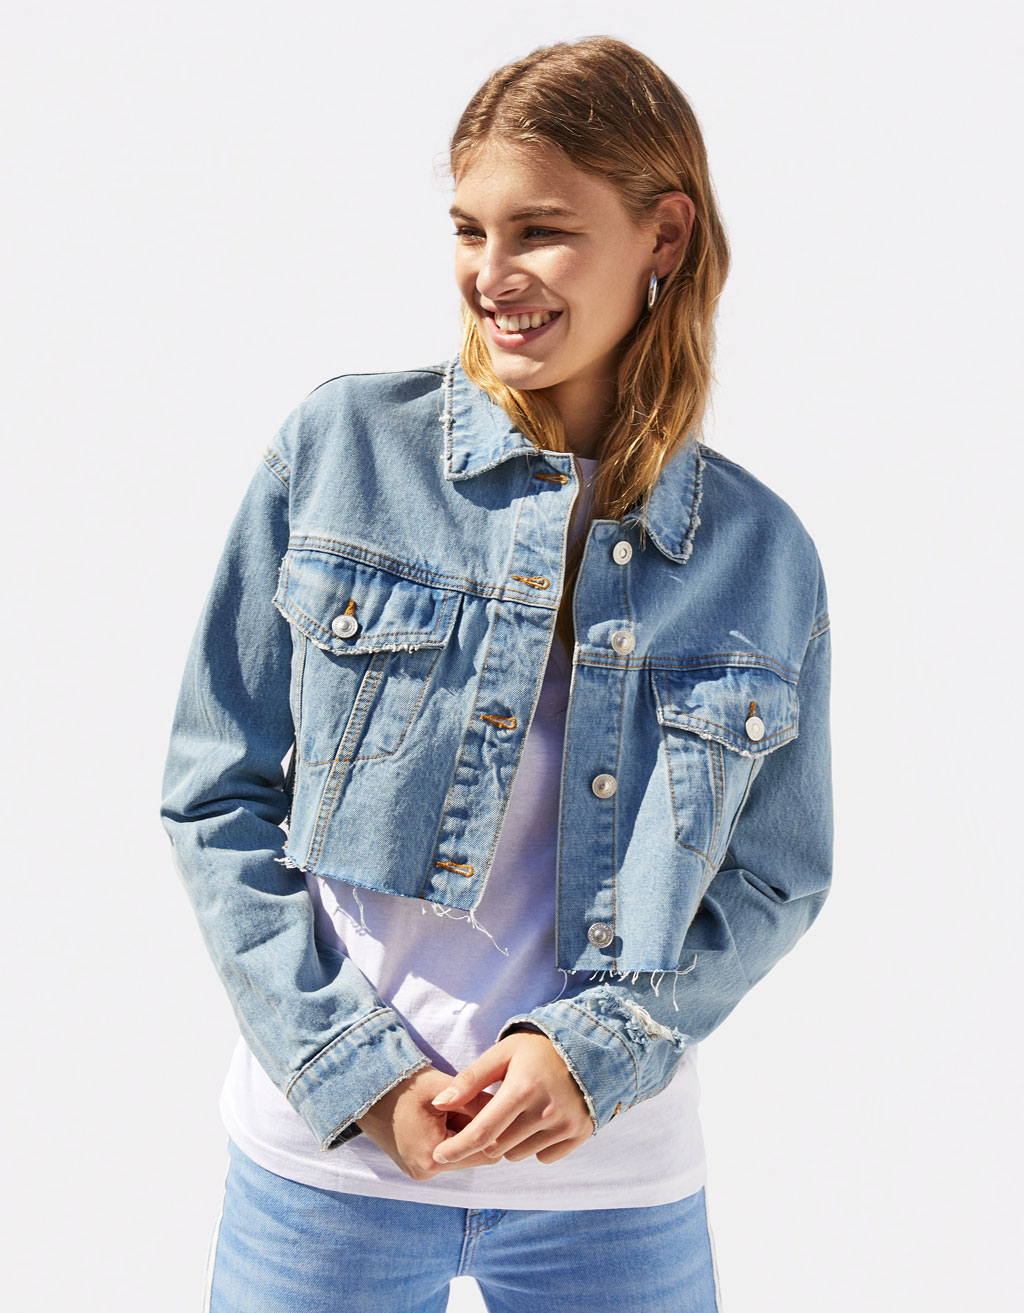 Denim jaka, cropped